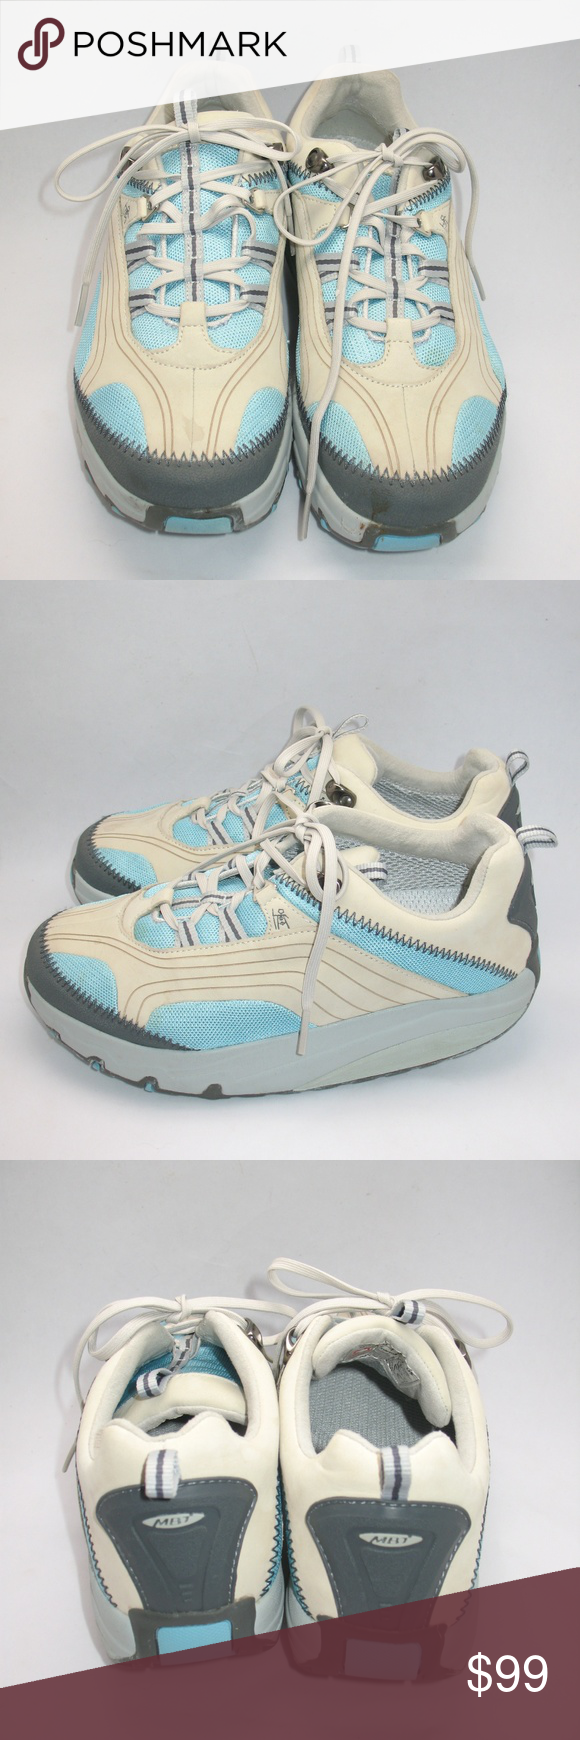 8861f187050c MBT CHAPA Azul Blue Physiological Sneakers  Very good condition. Small spot  on the front